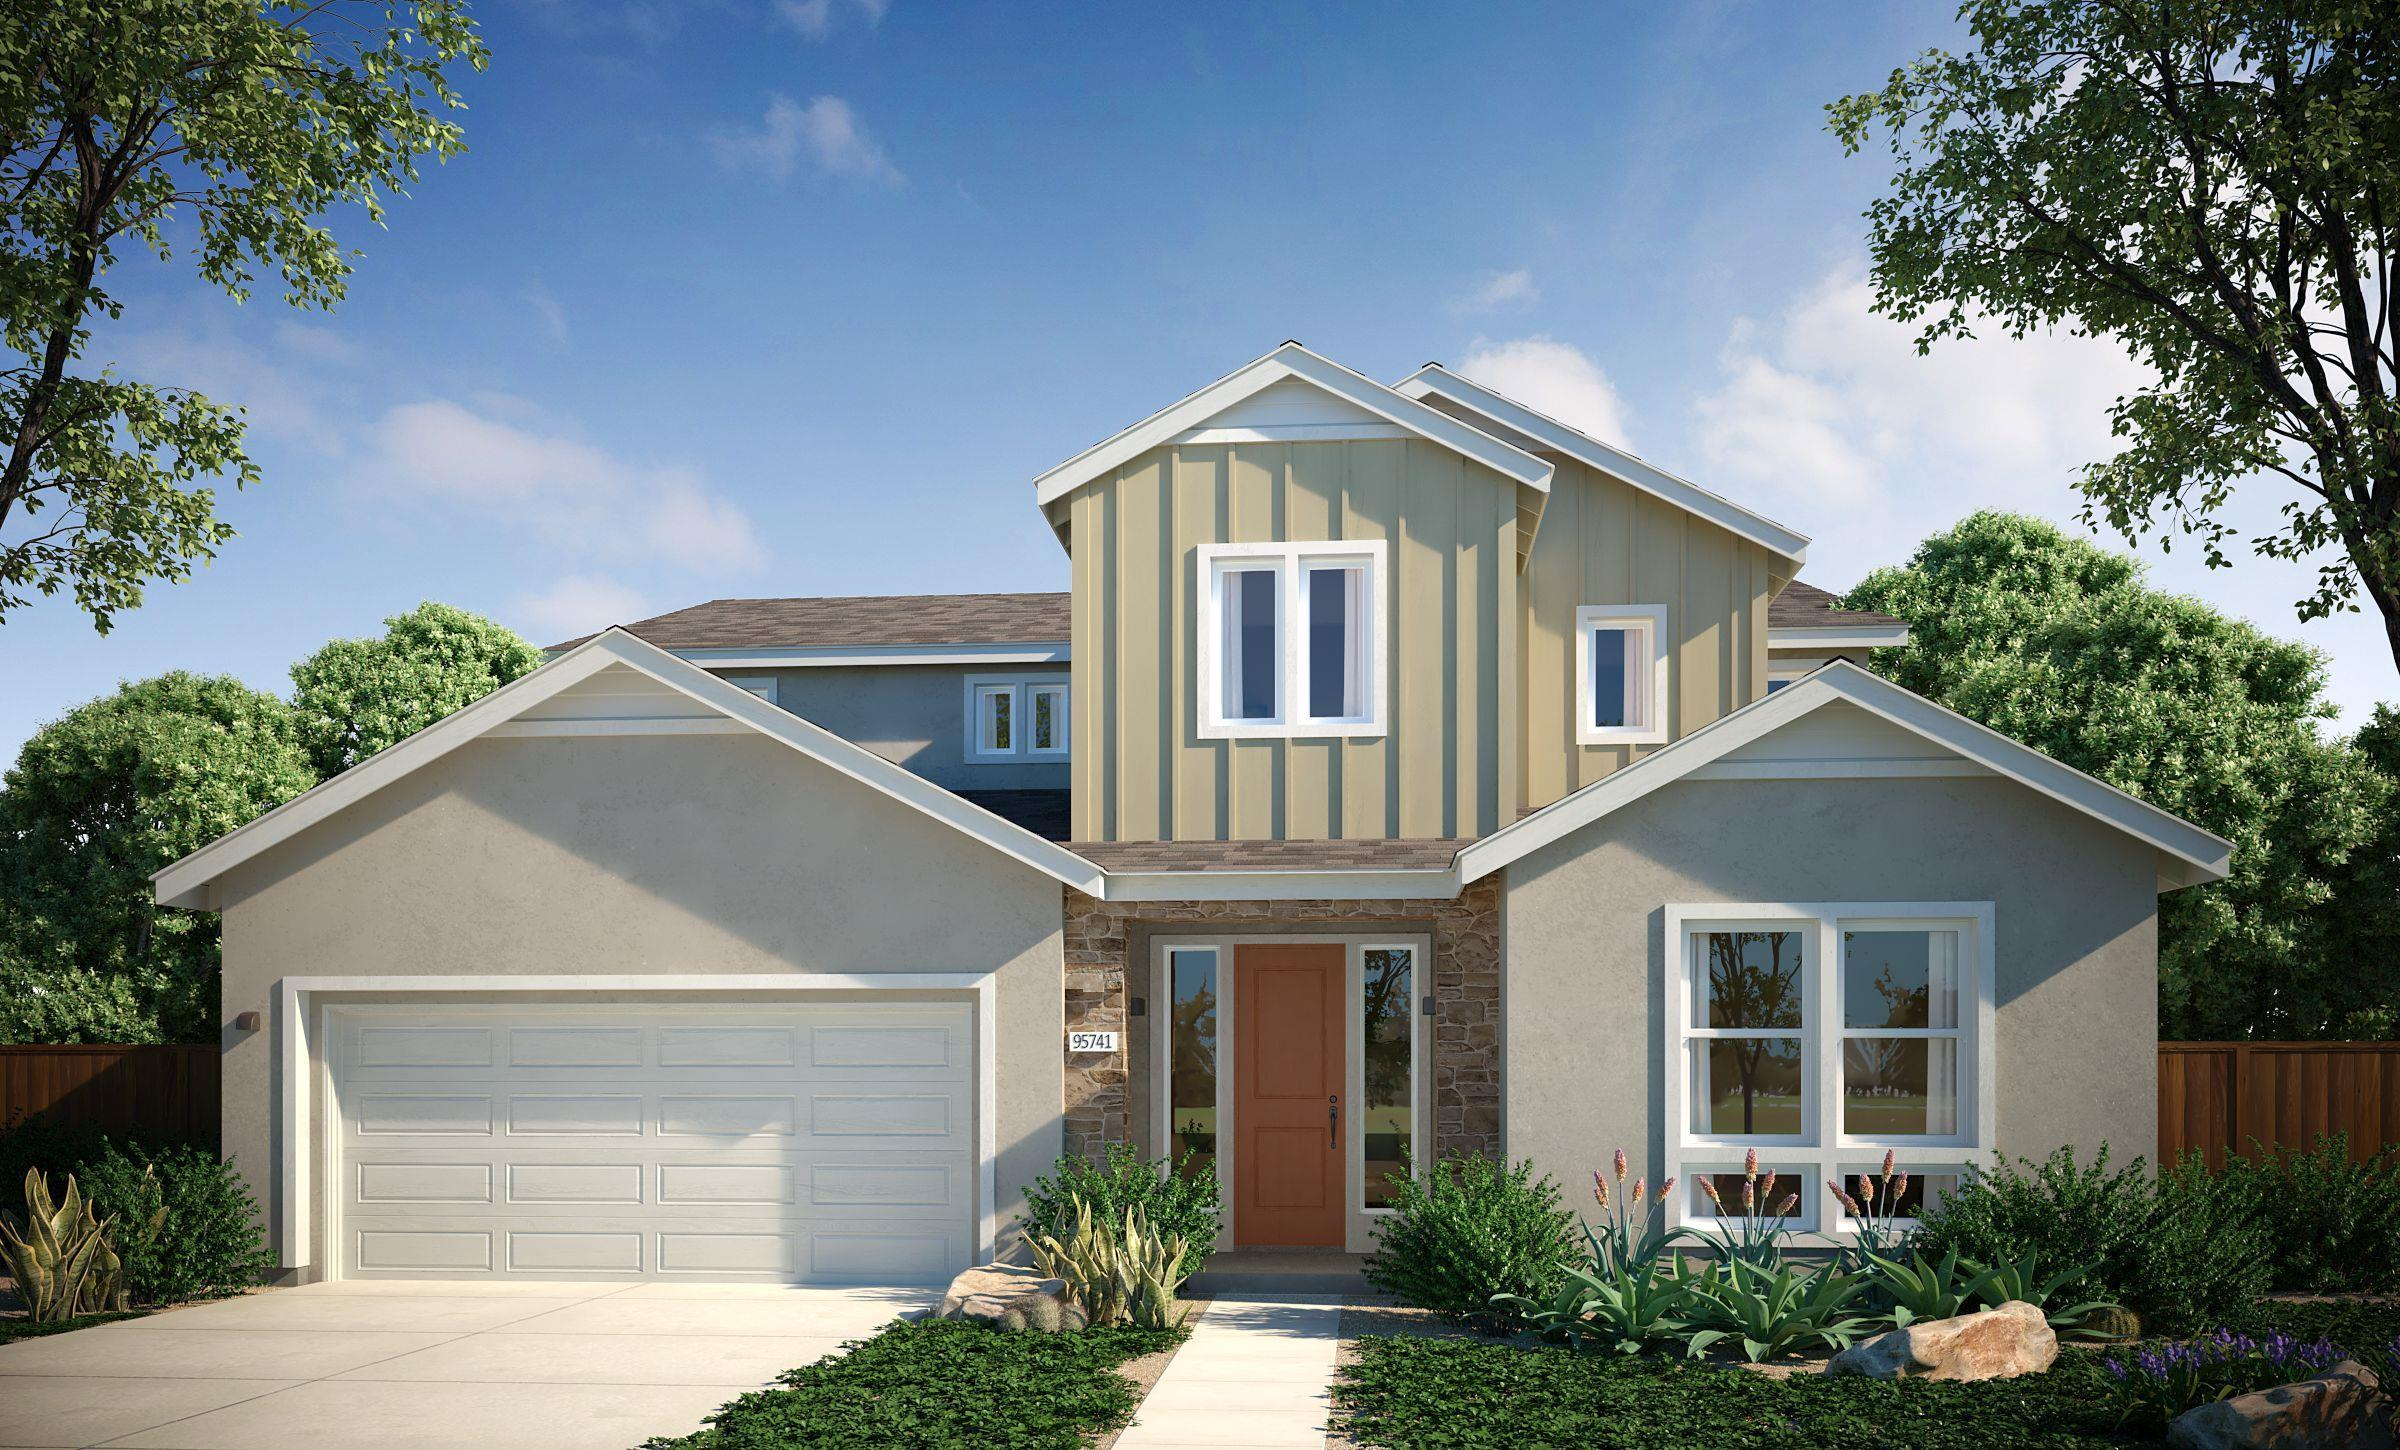 Miraculous New Construction Homes Plans In Fair Oaks Ca 1 112 Download Free Architecture Designs Xaembritishbridgeorg